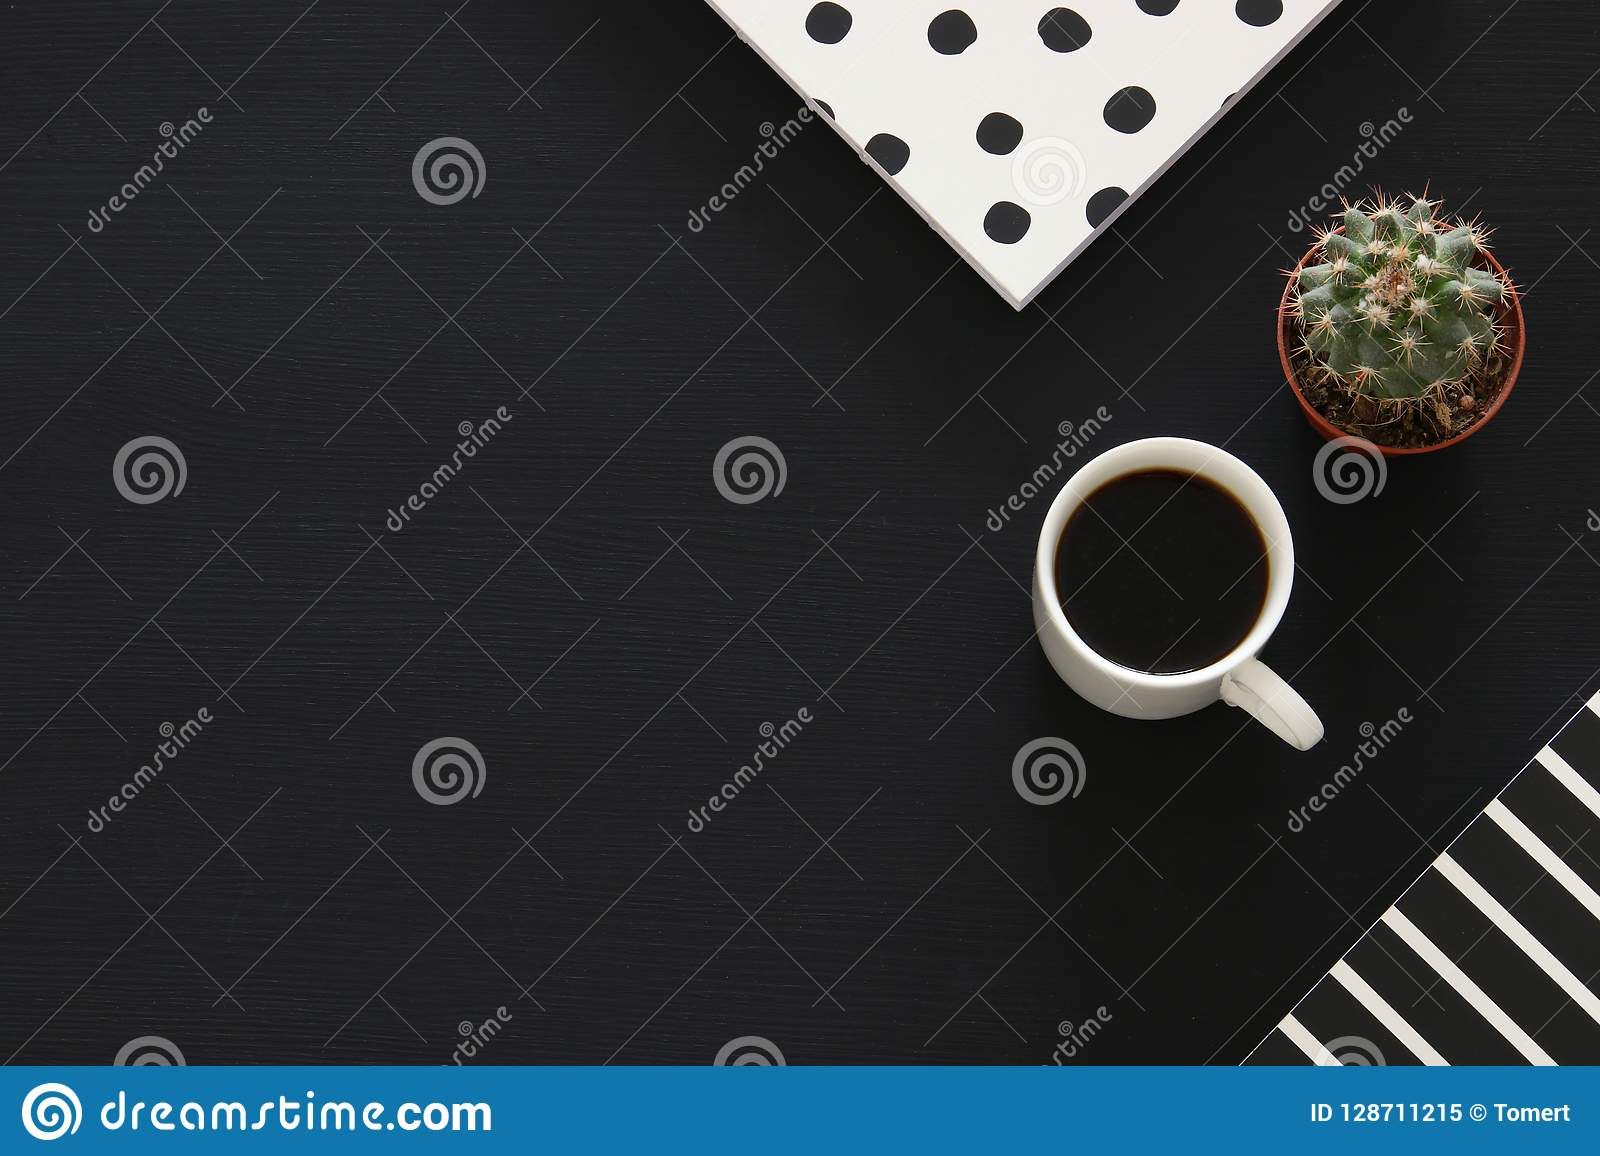 image of coffee cup and notebook over black background. Top view.